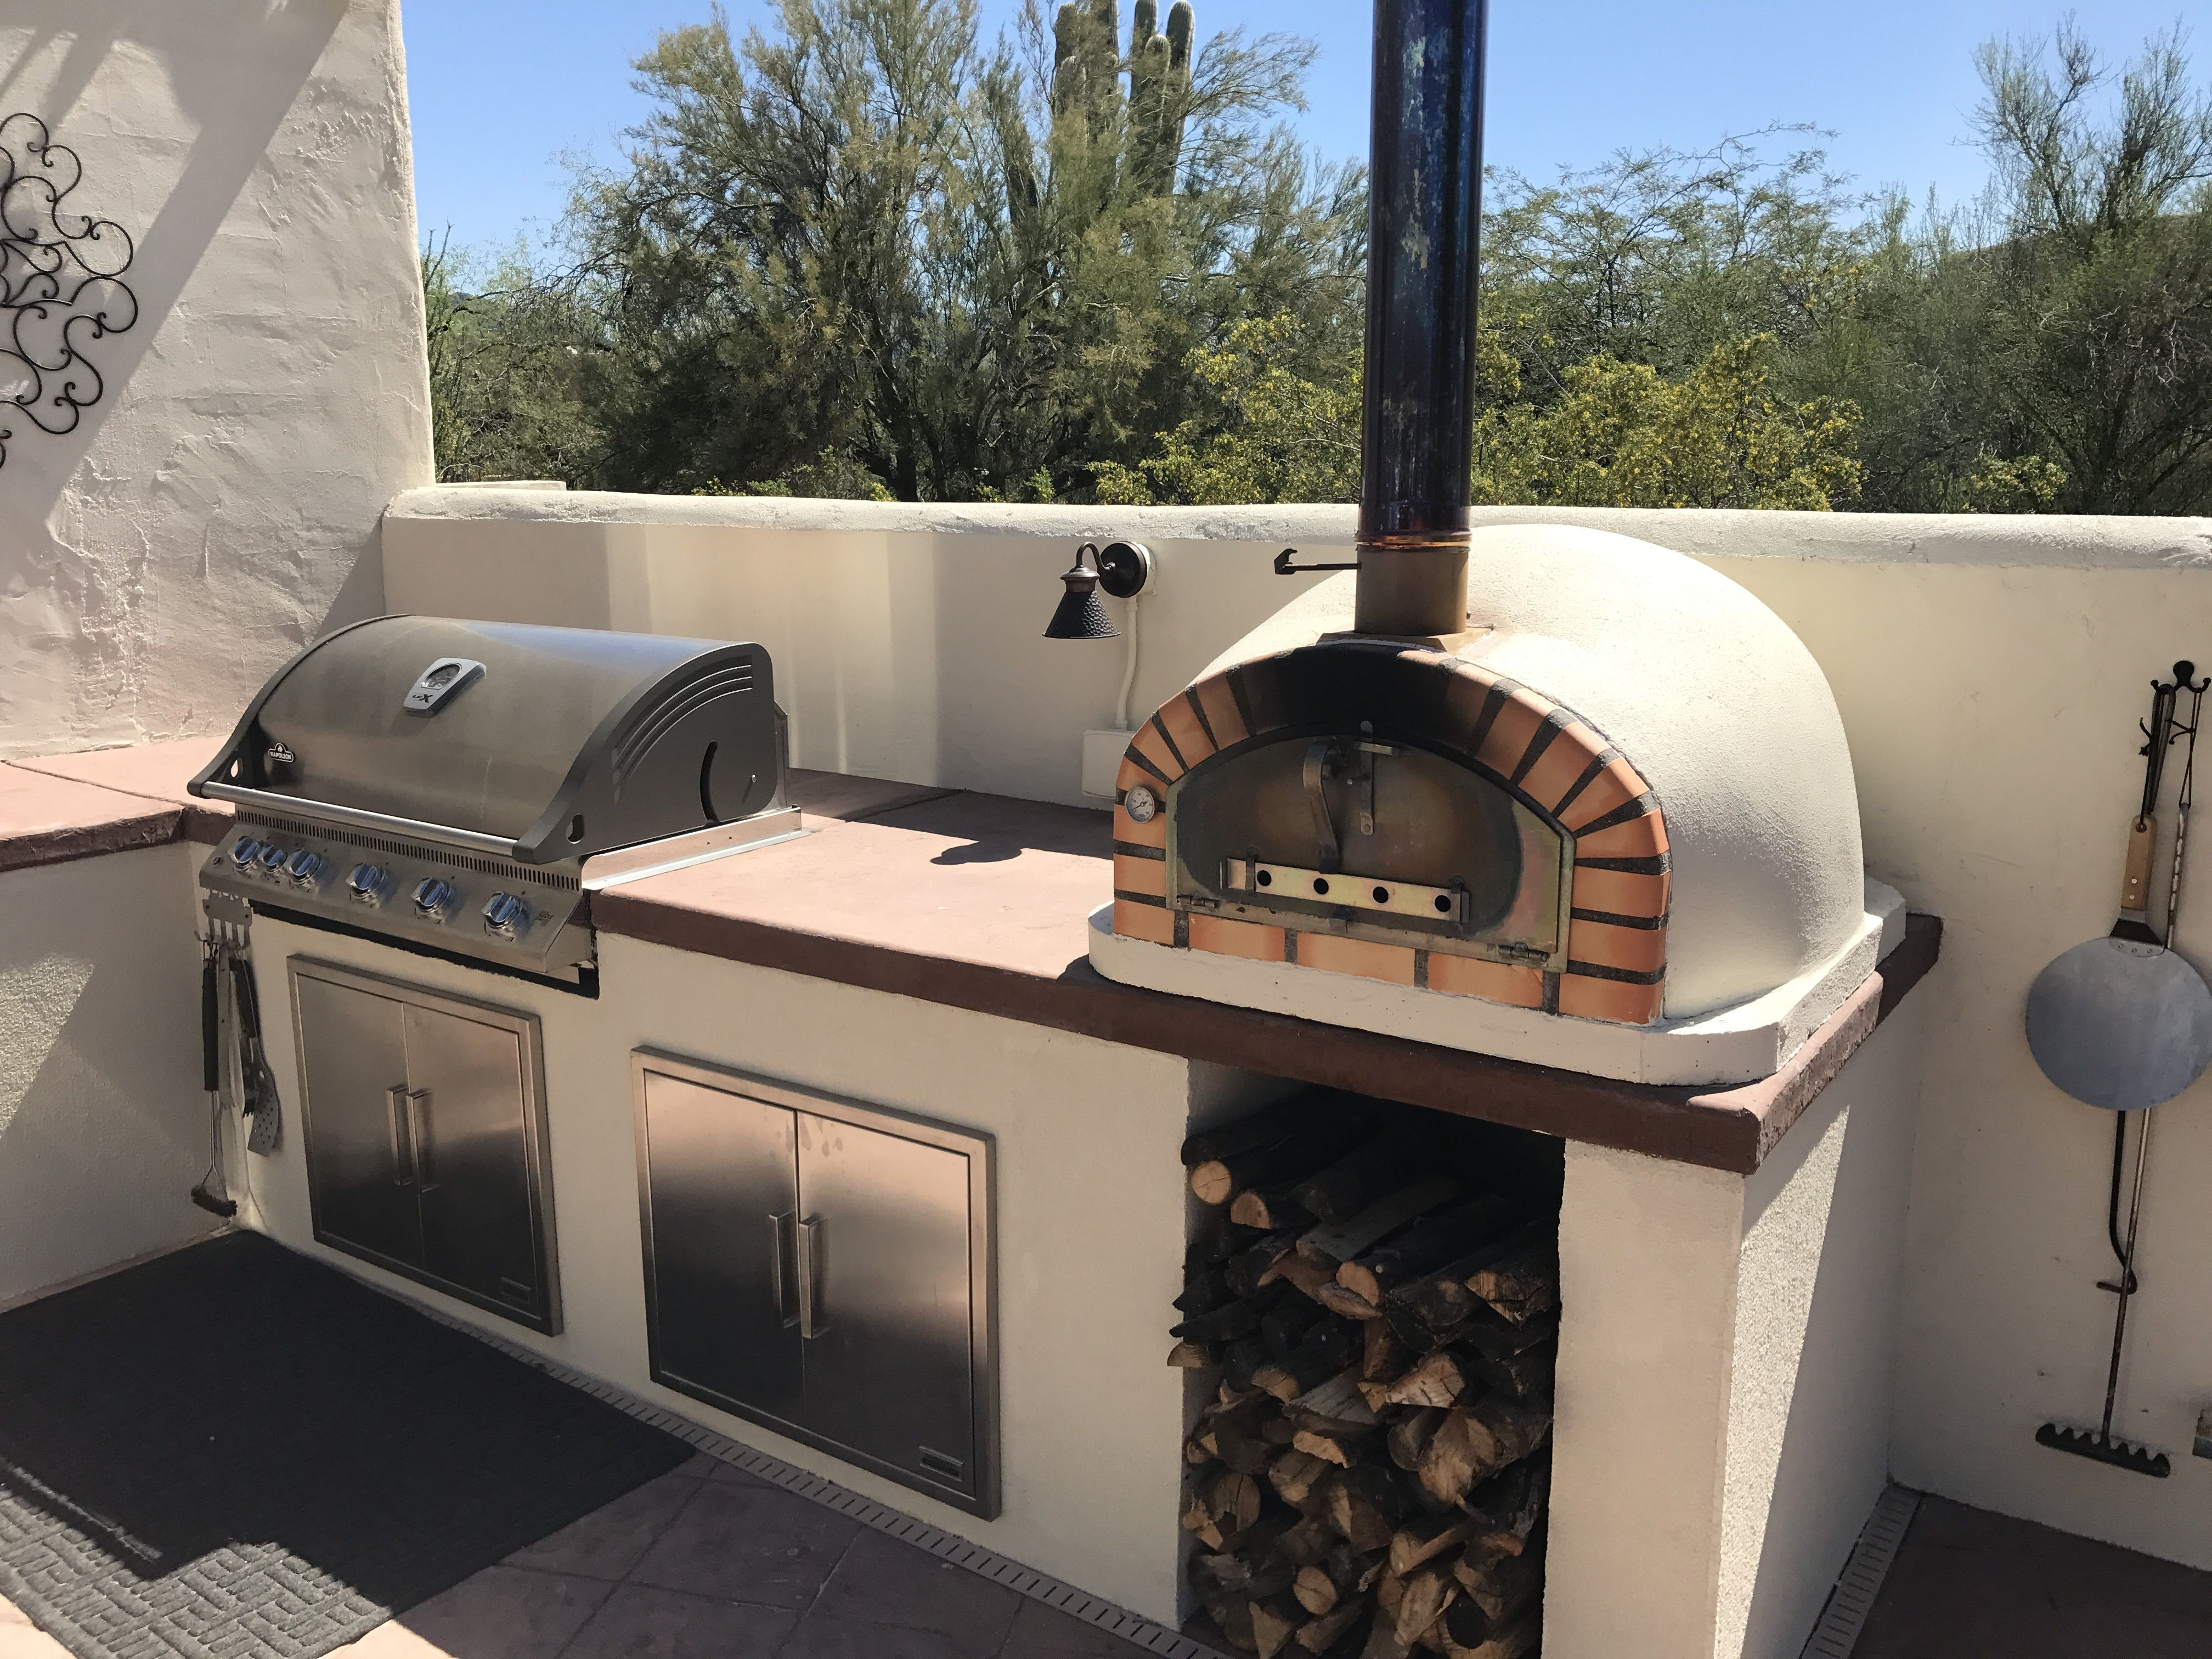 Pizza Oven Free Plans Build Outdoor Kitchen Diy Outdoor Kitchen Outdoor Kitchen Bars